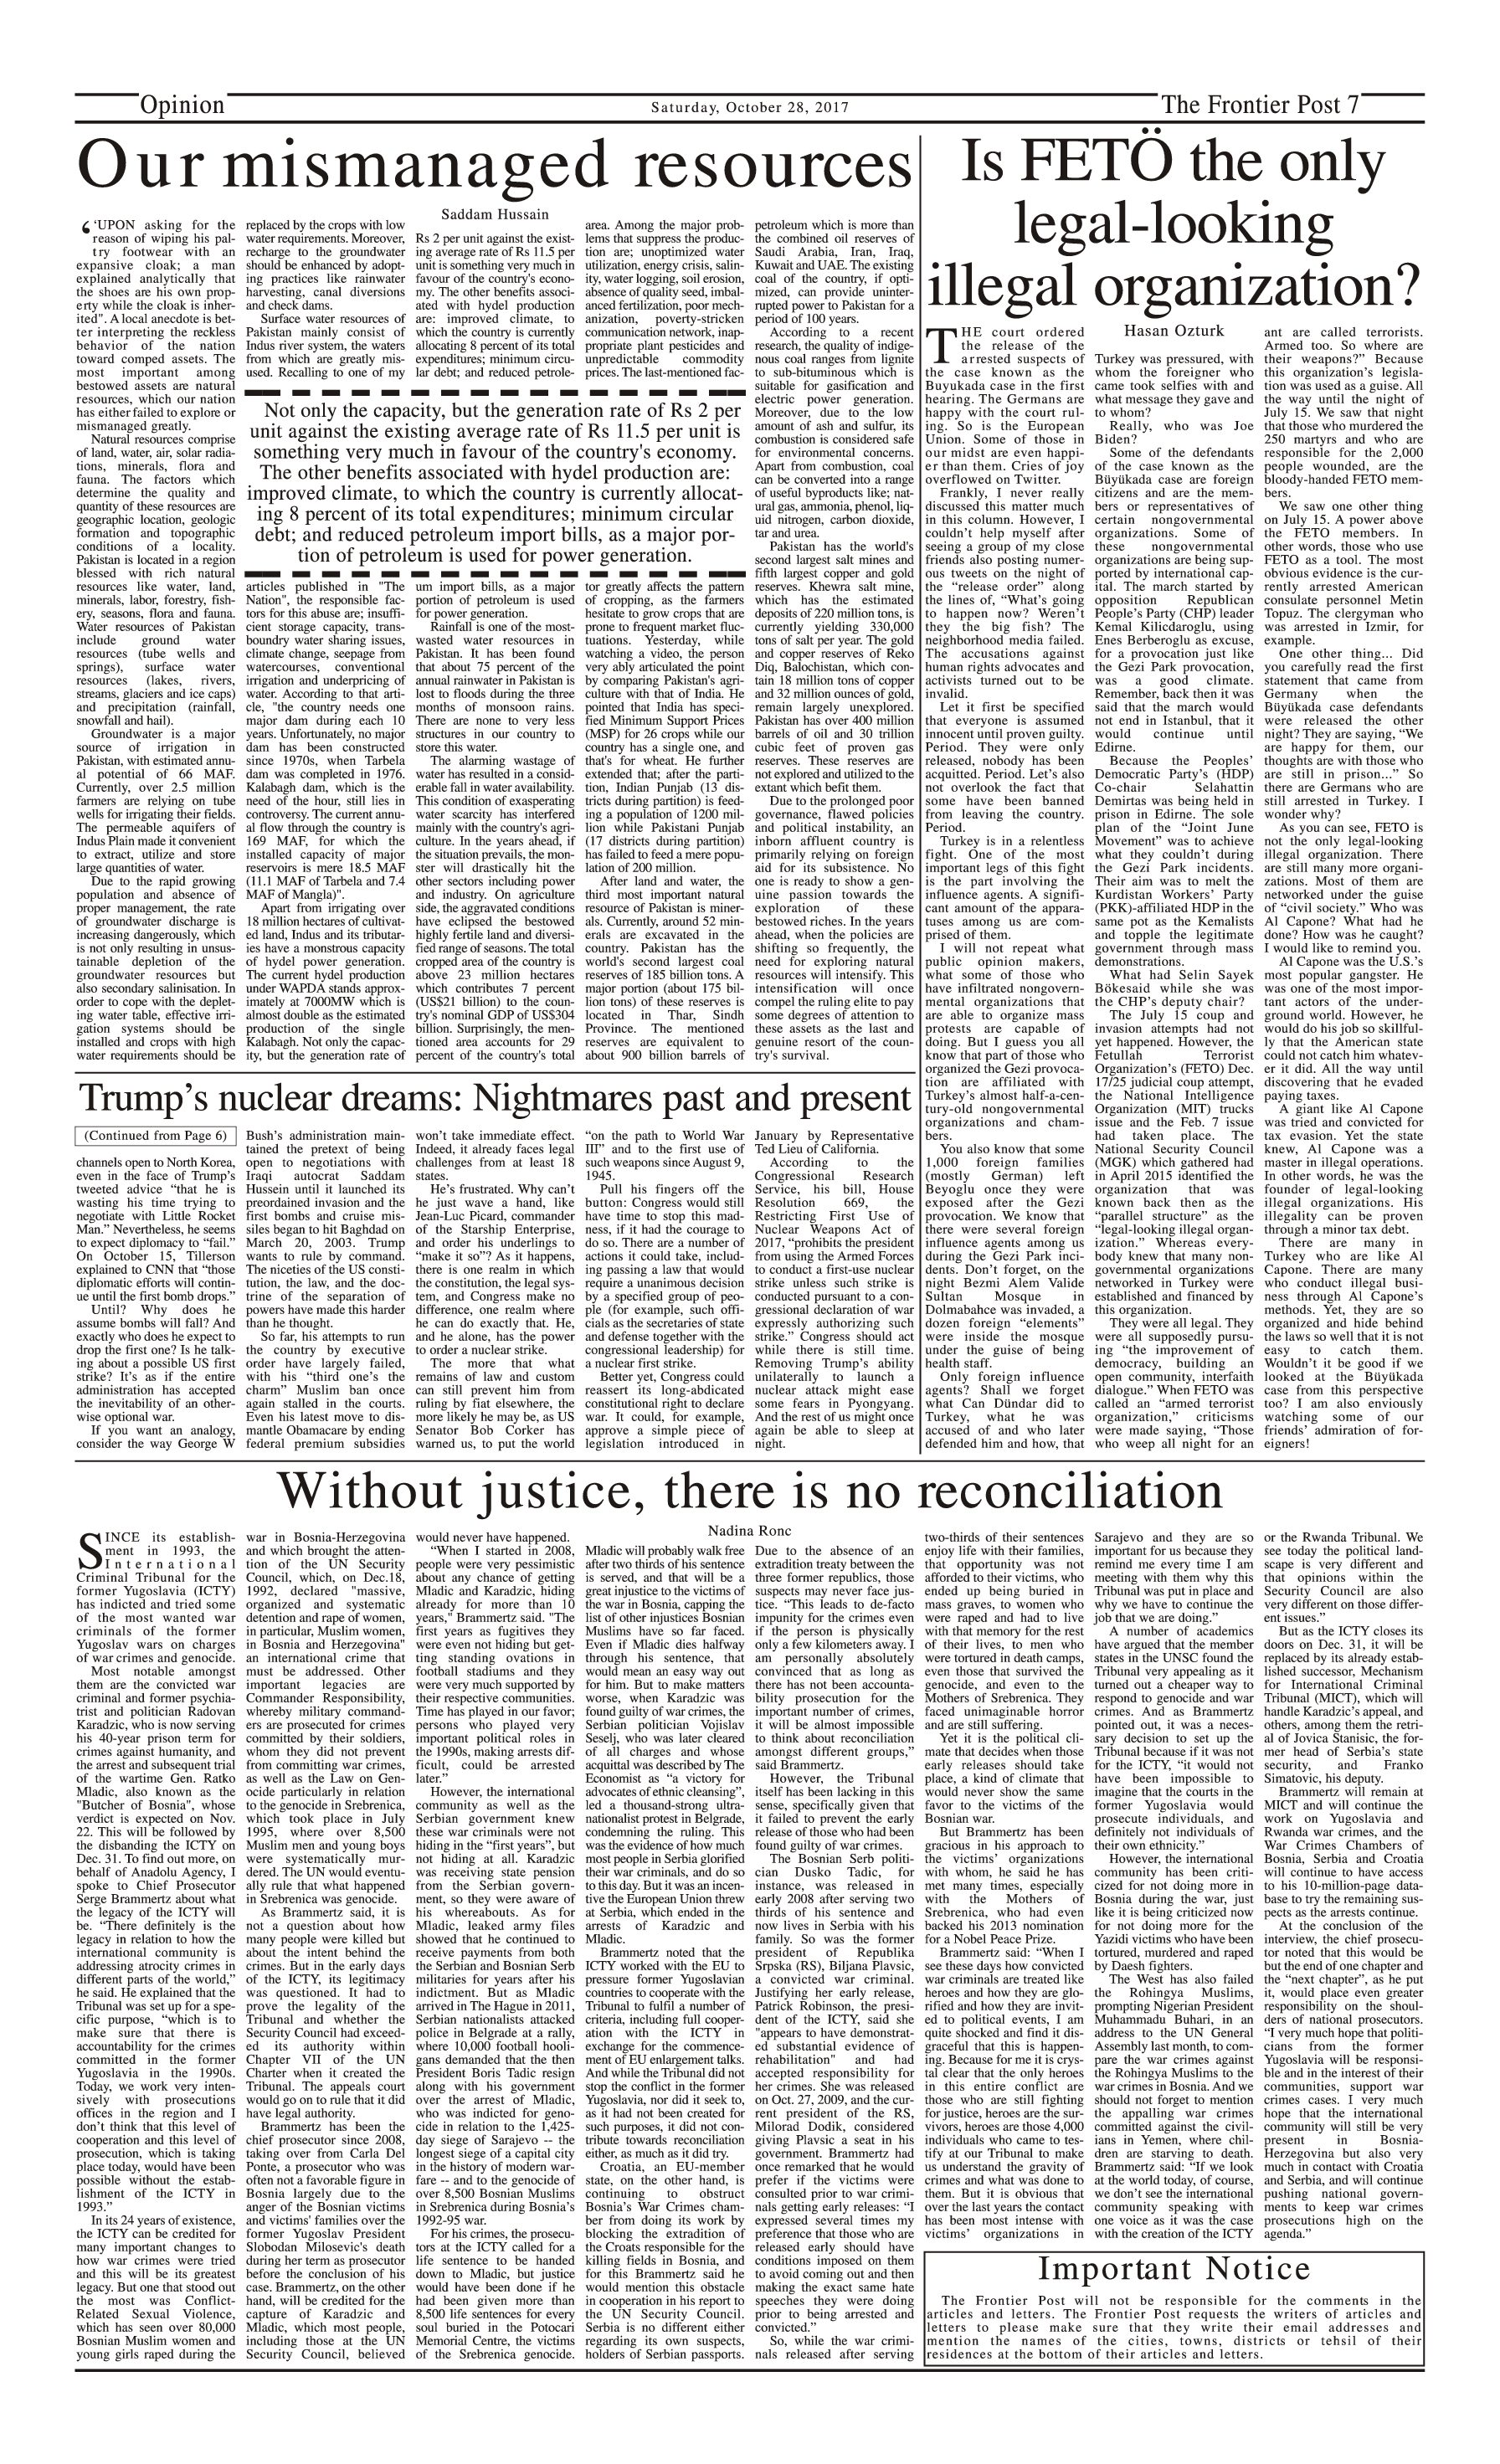 Opinion Page 28-10